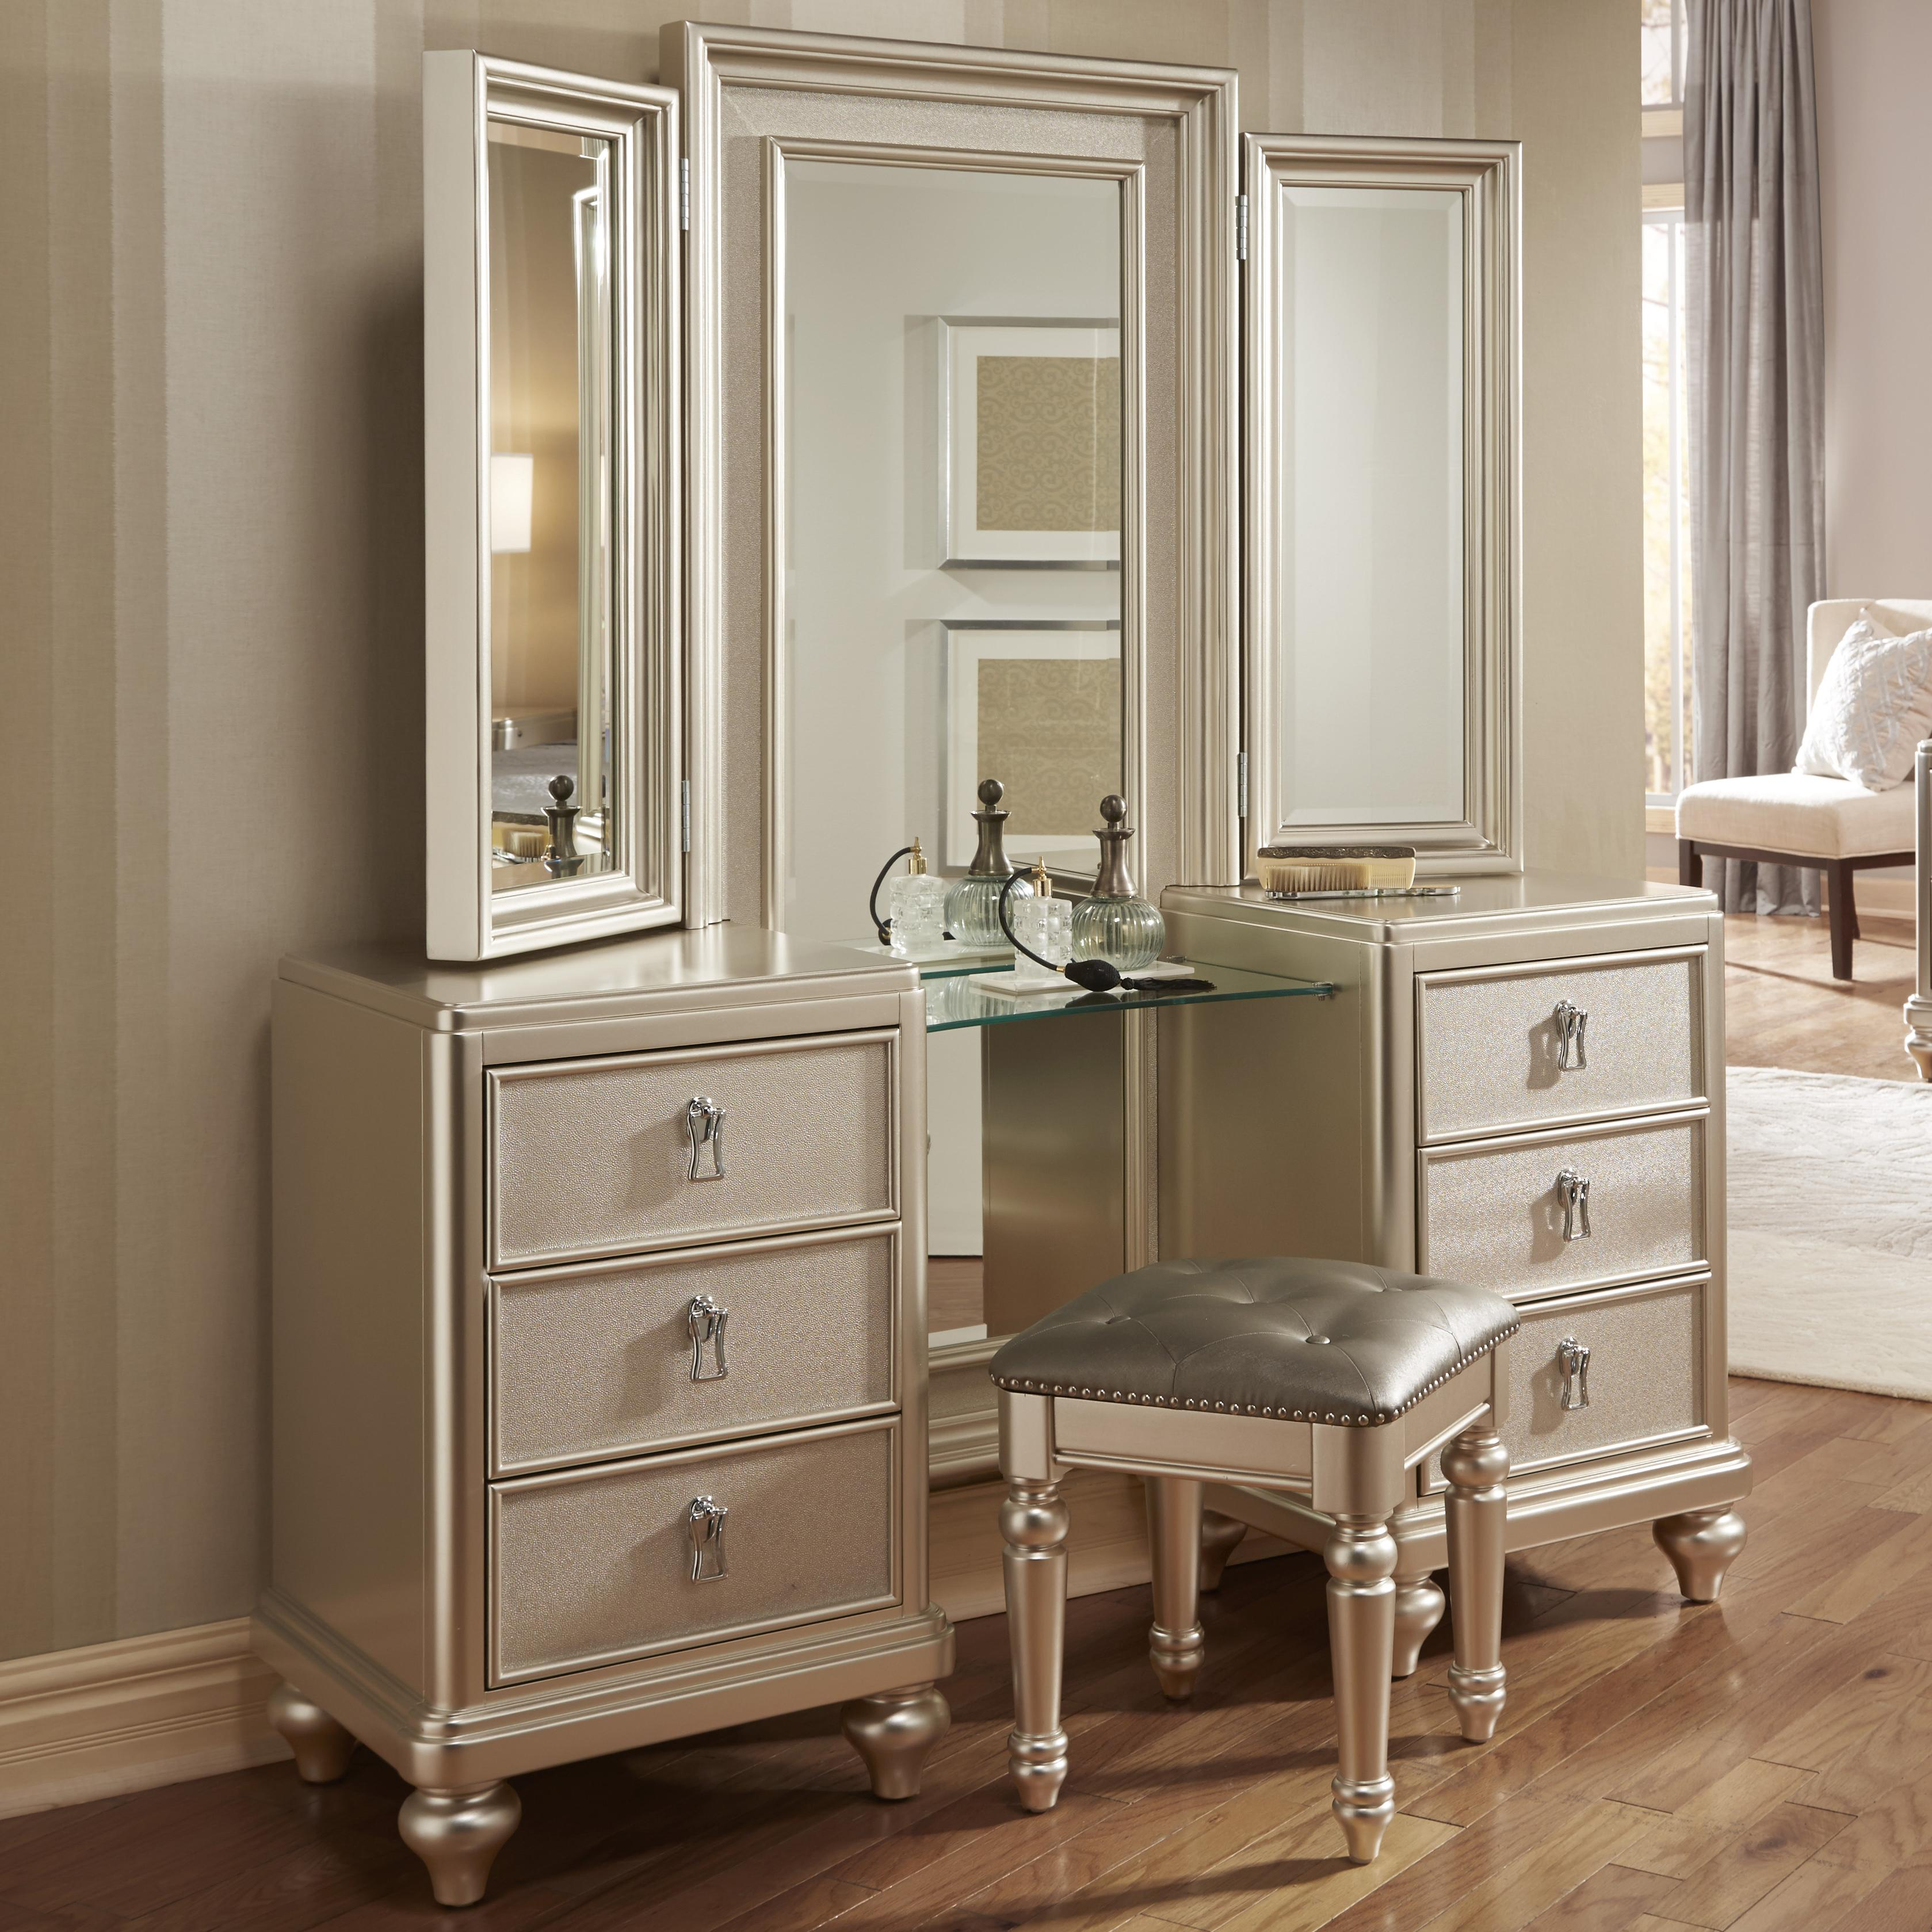 South Beach South Beach 2 Piece Vanity Dresser & Mirror by Samuel Lawrence at Morris Home